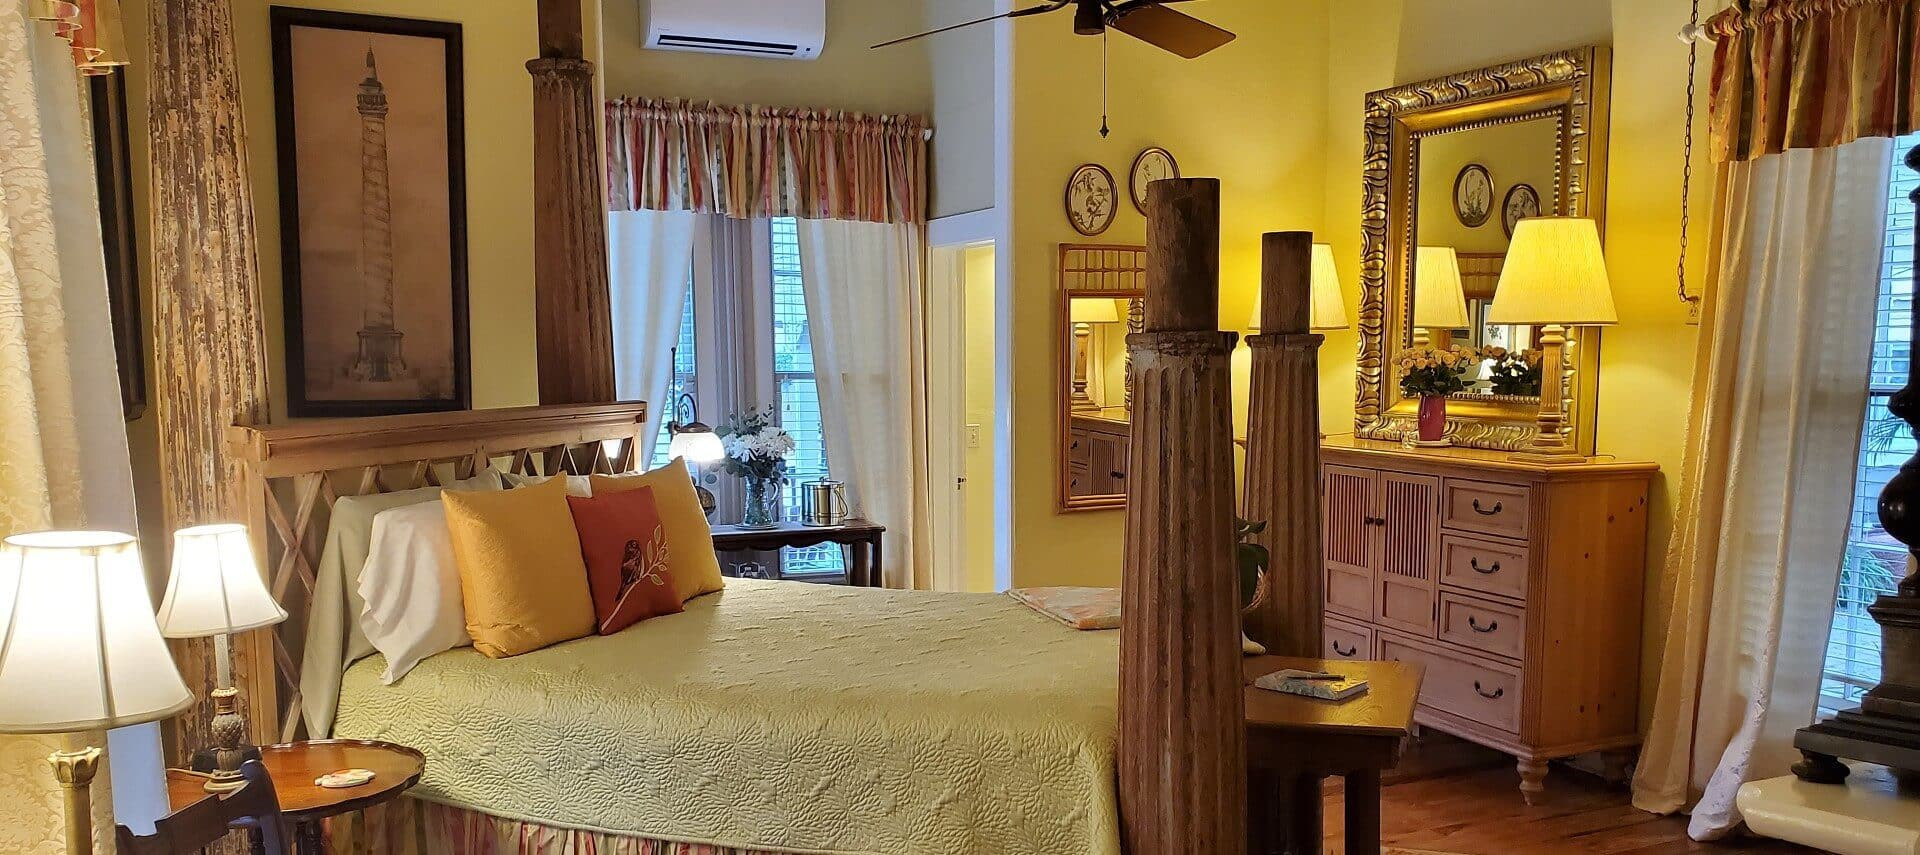 Four poster bed in room with brown accent furniture, yellow walls and bright and airy windows